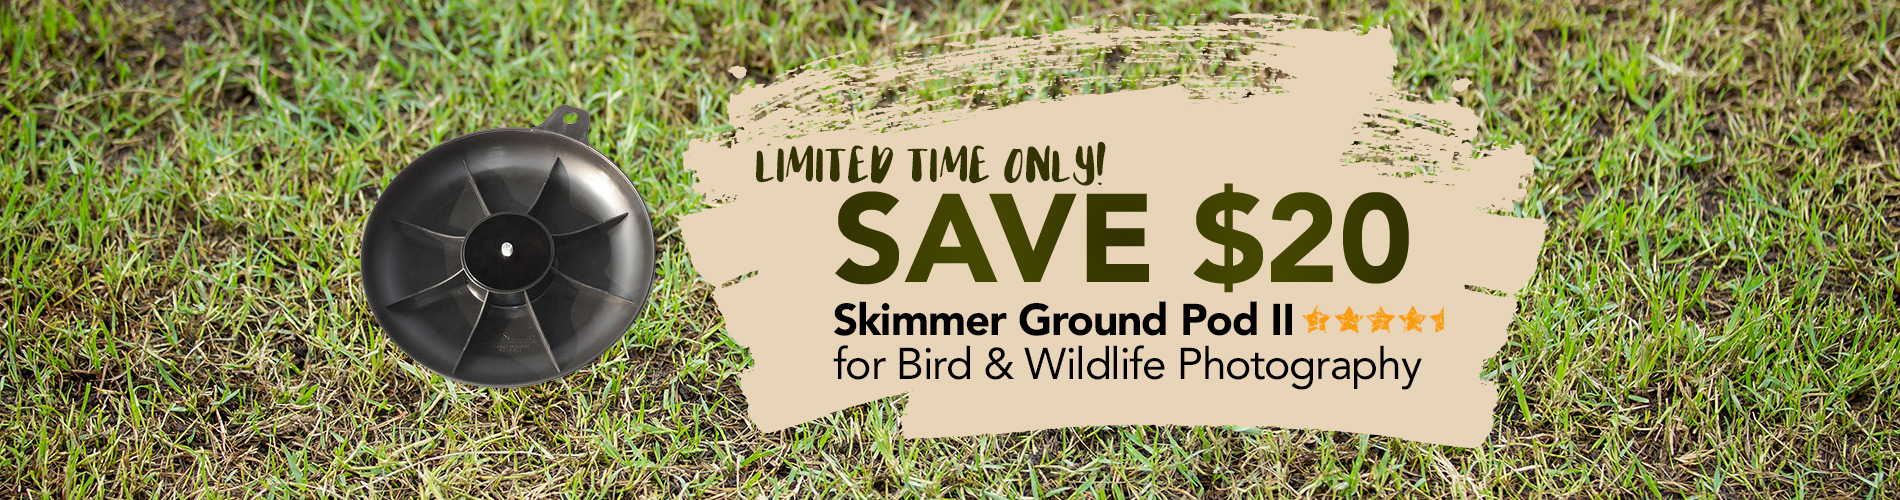 Limited time only! Save $20 on the Skimmer Ground Pod II for Bird and Wildlife Photography